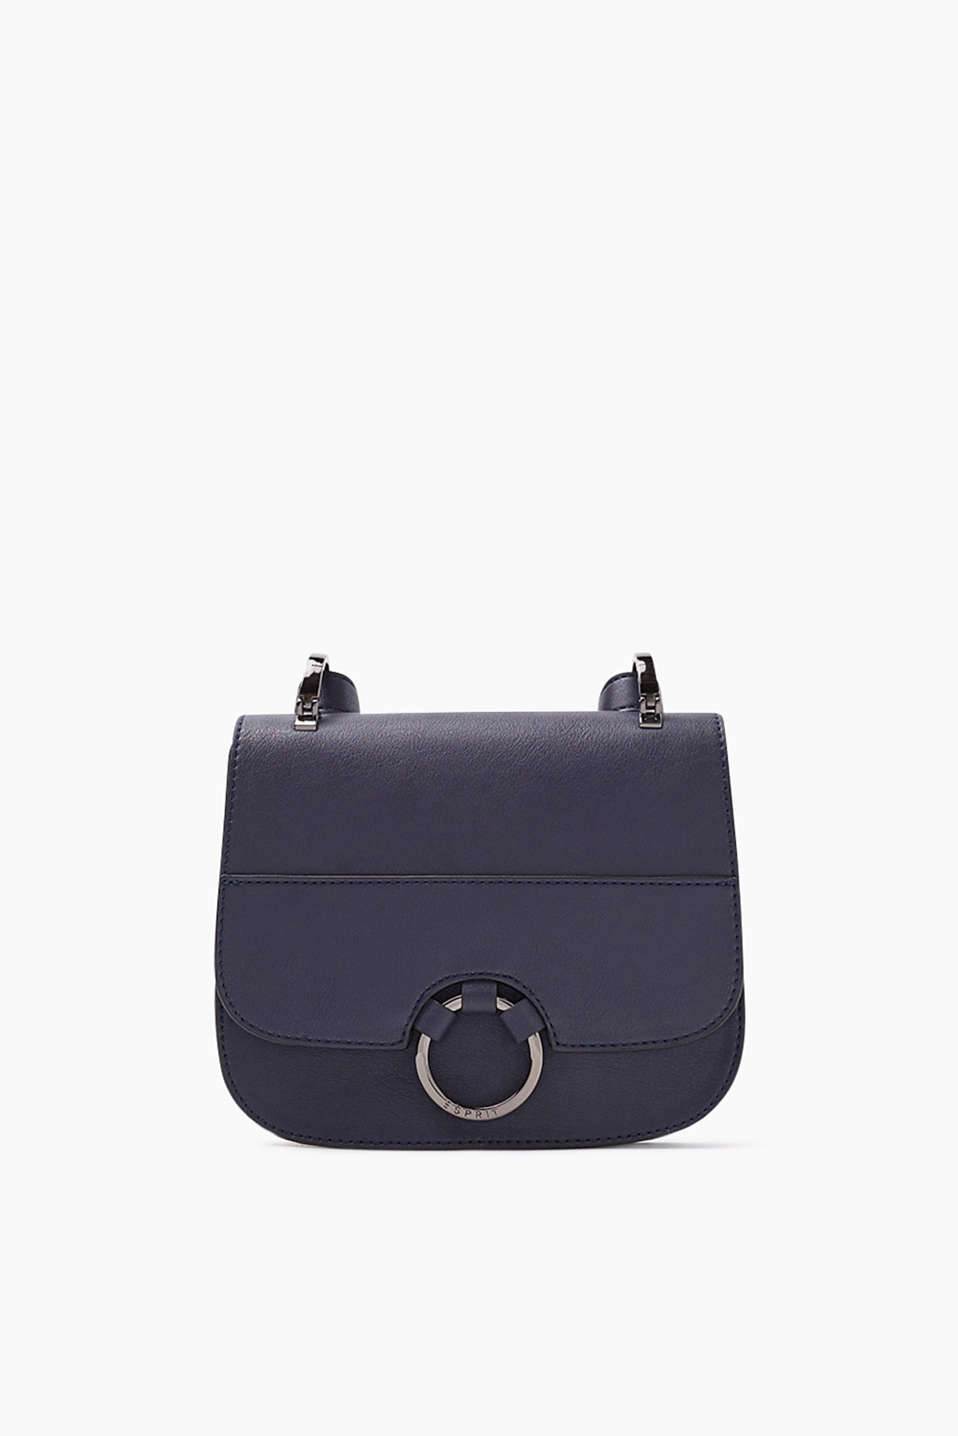 Shoulder bag in imitation leather with distinctive metal details